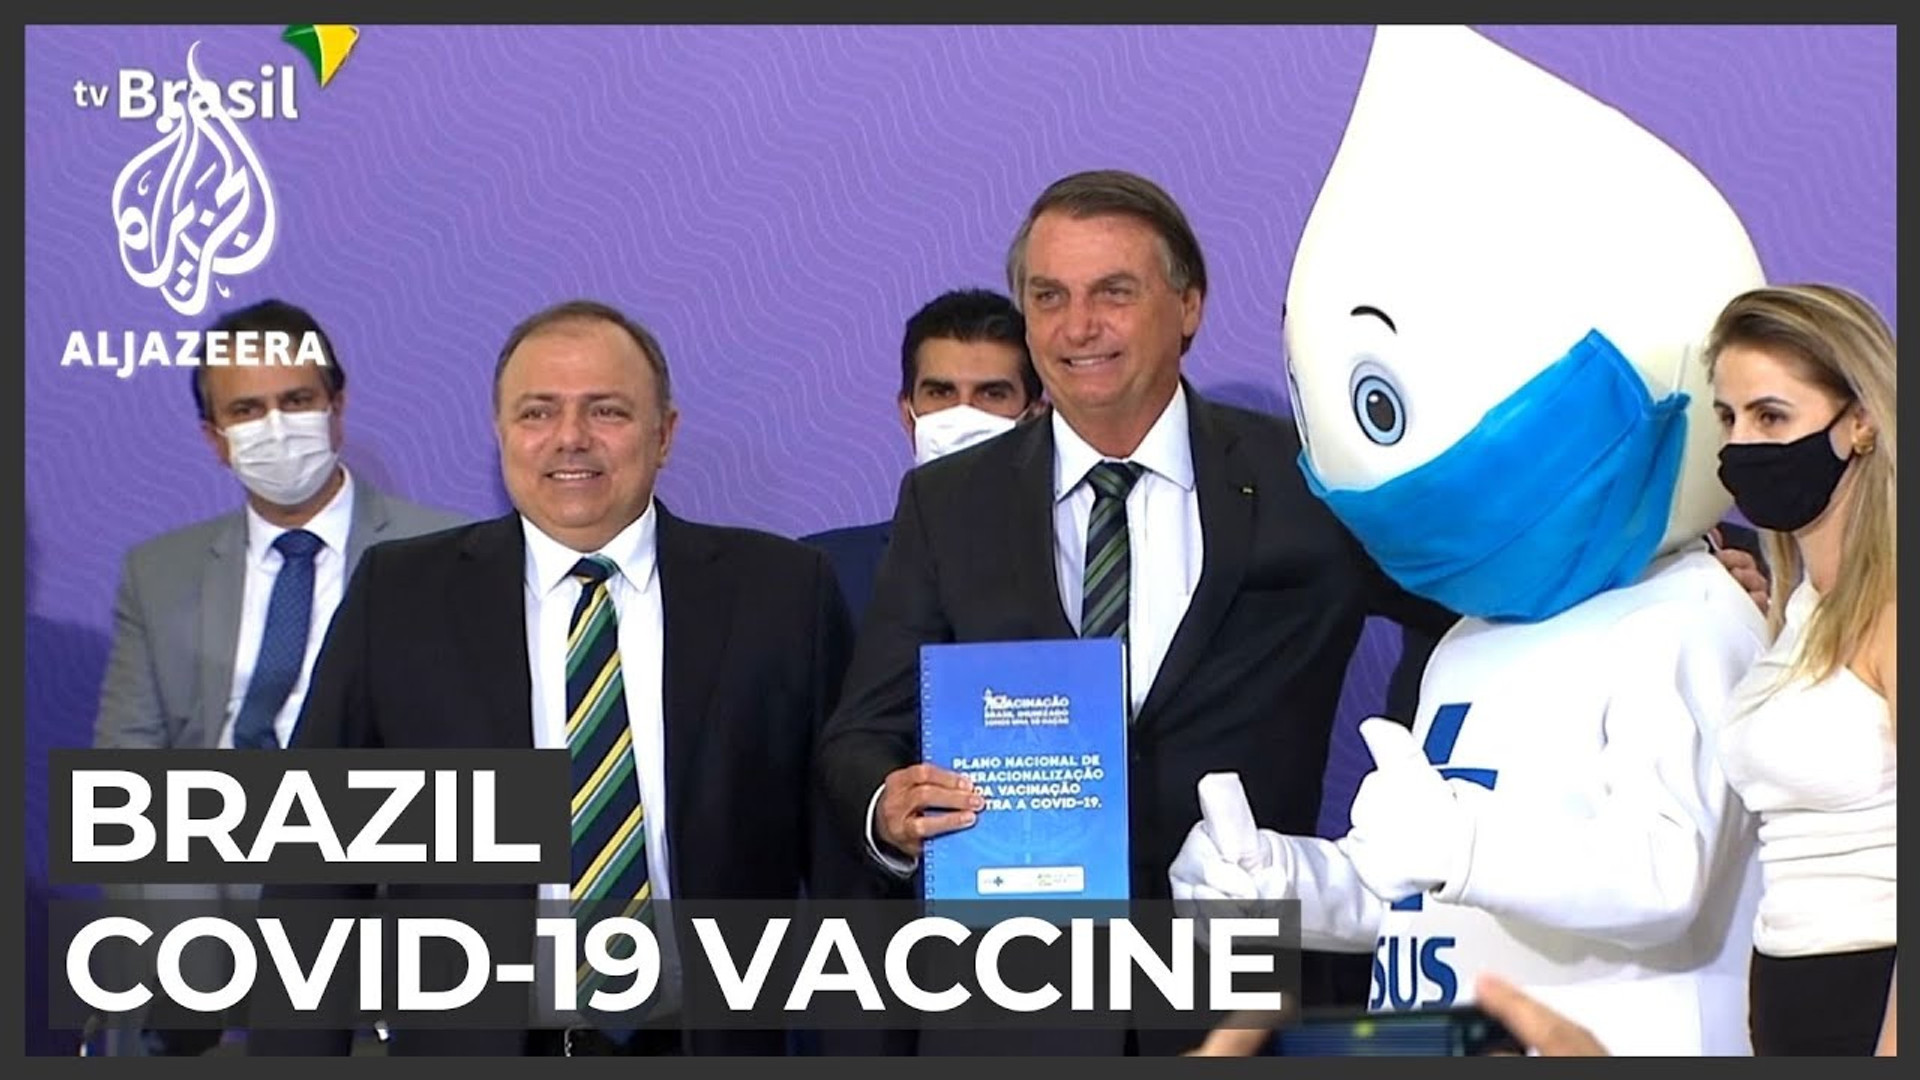 Brazil sets aside $4bn for COVID-19 vaccines